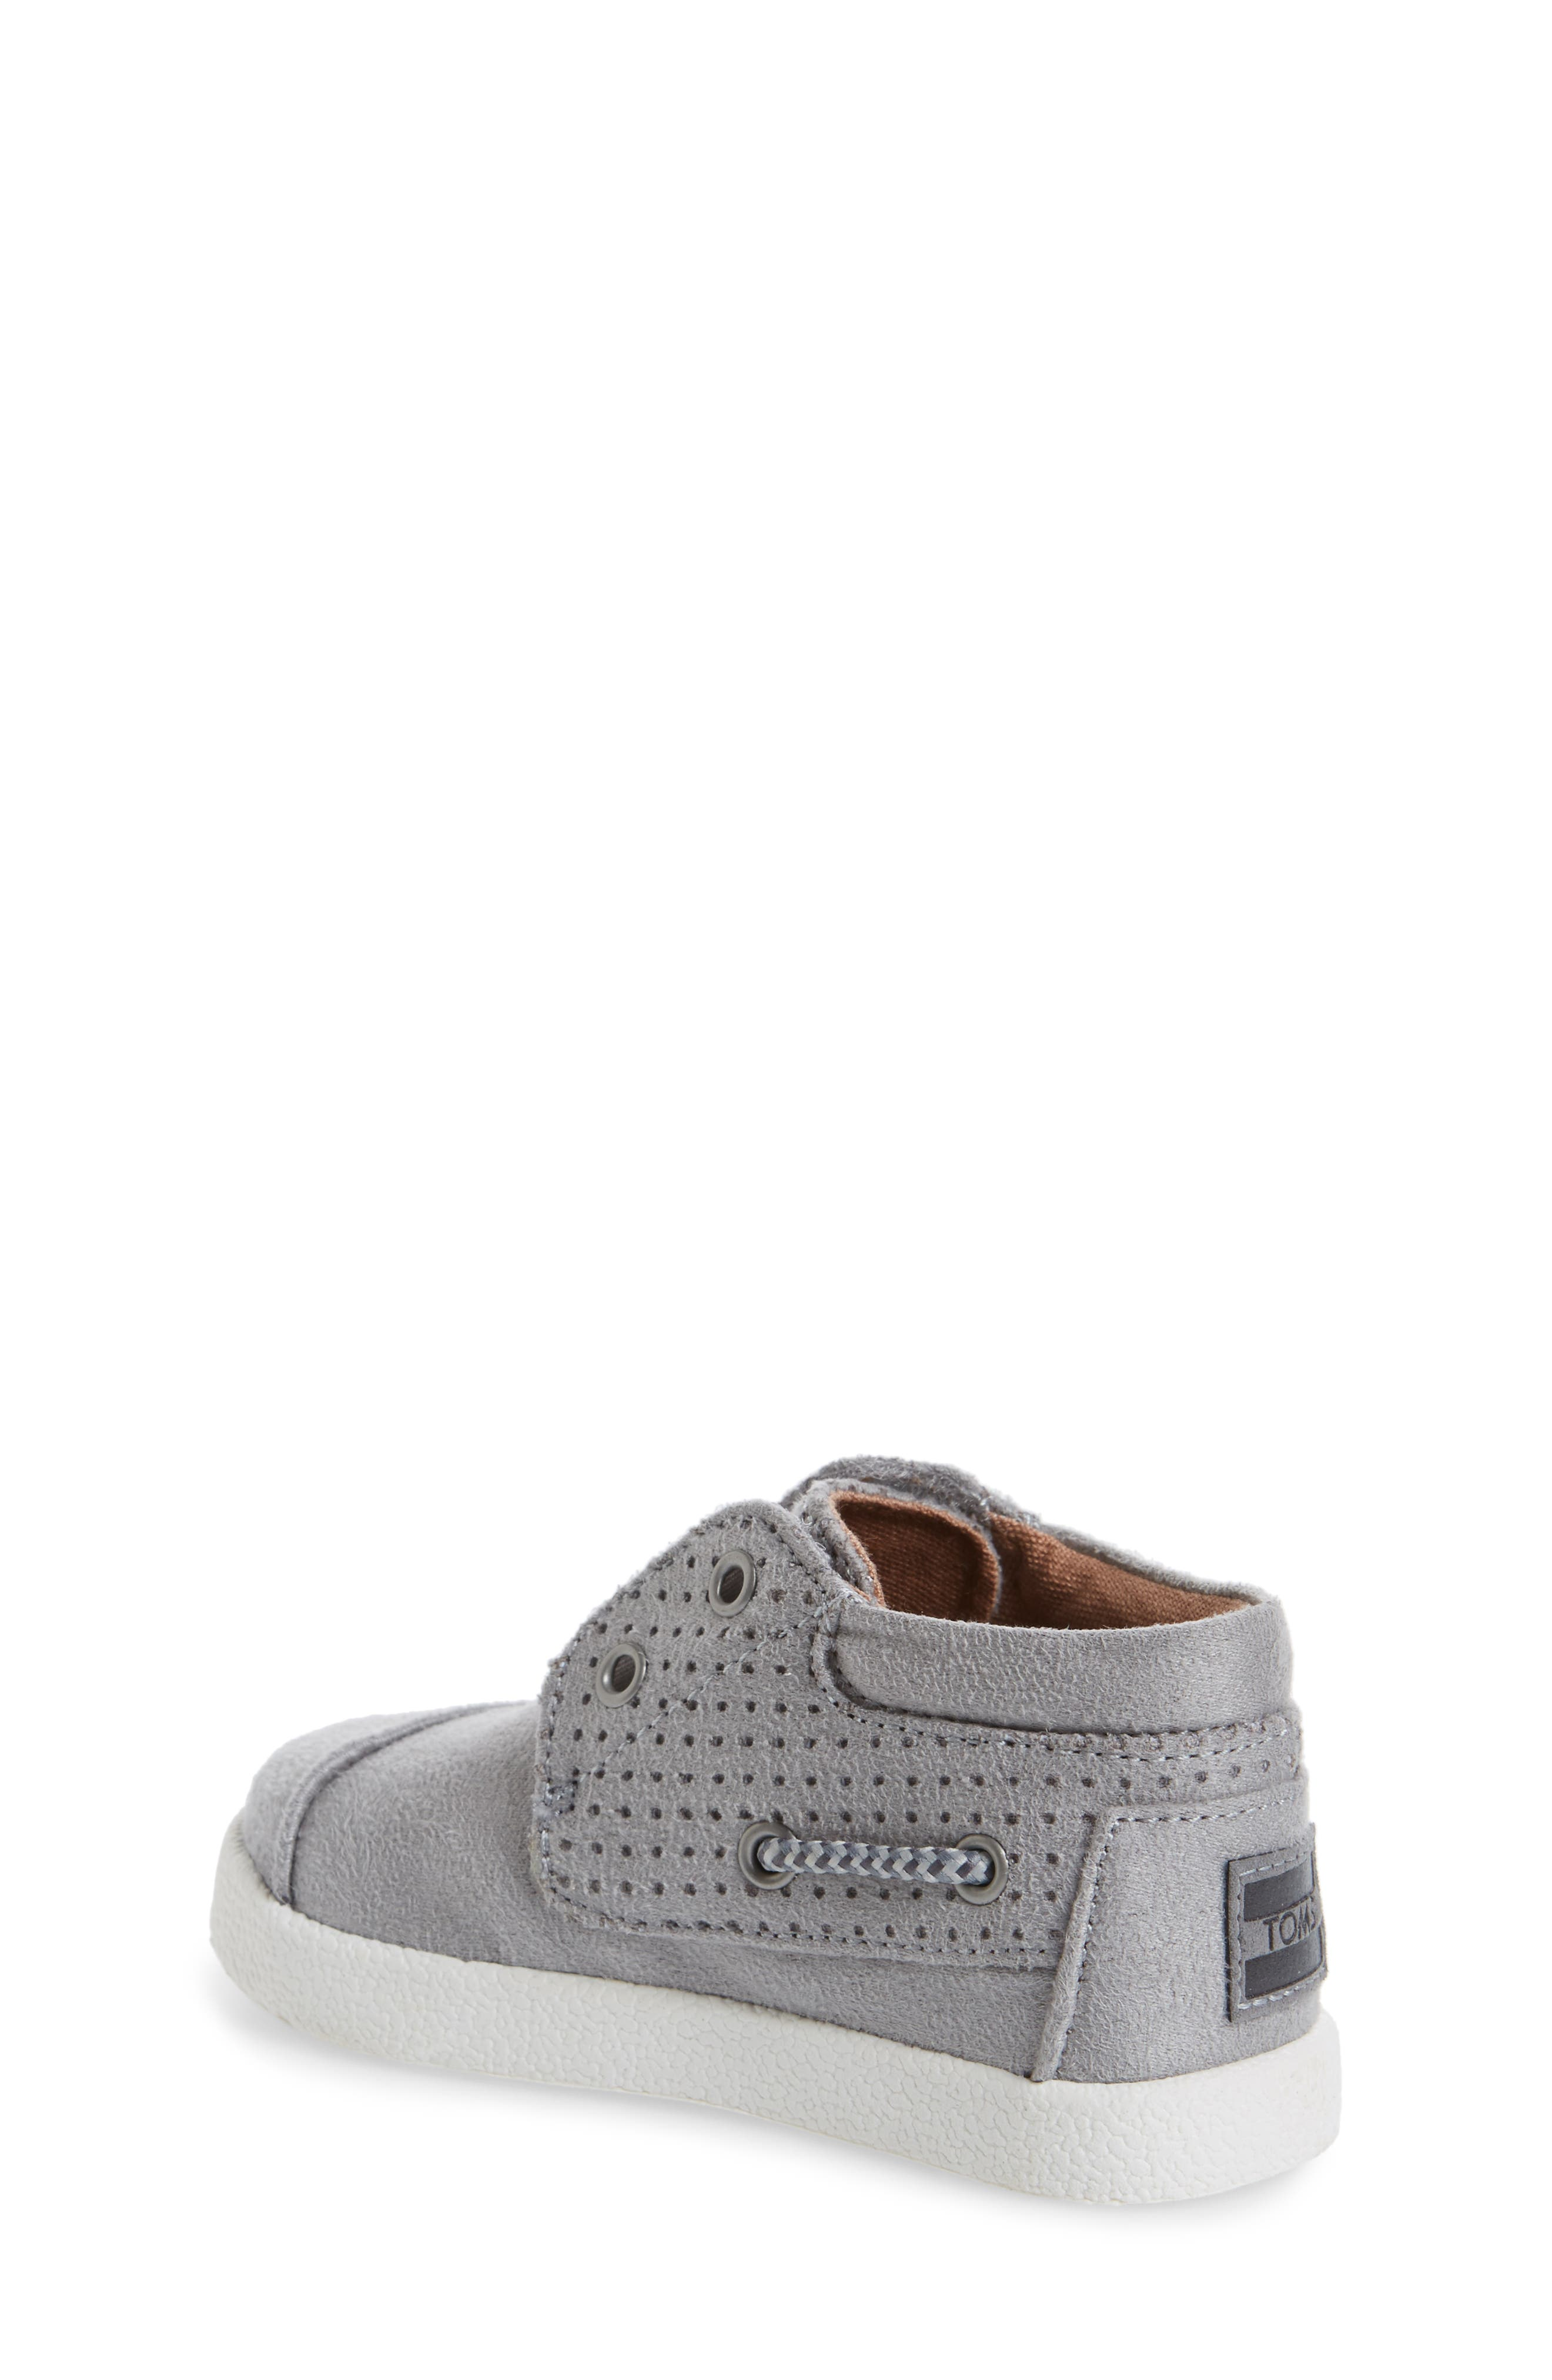 sale all crib toms shoes nordstrom kids baby c cribs